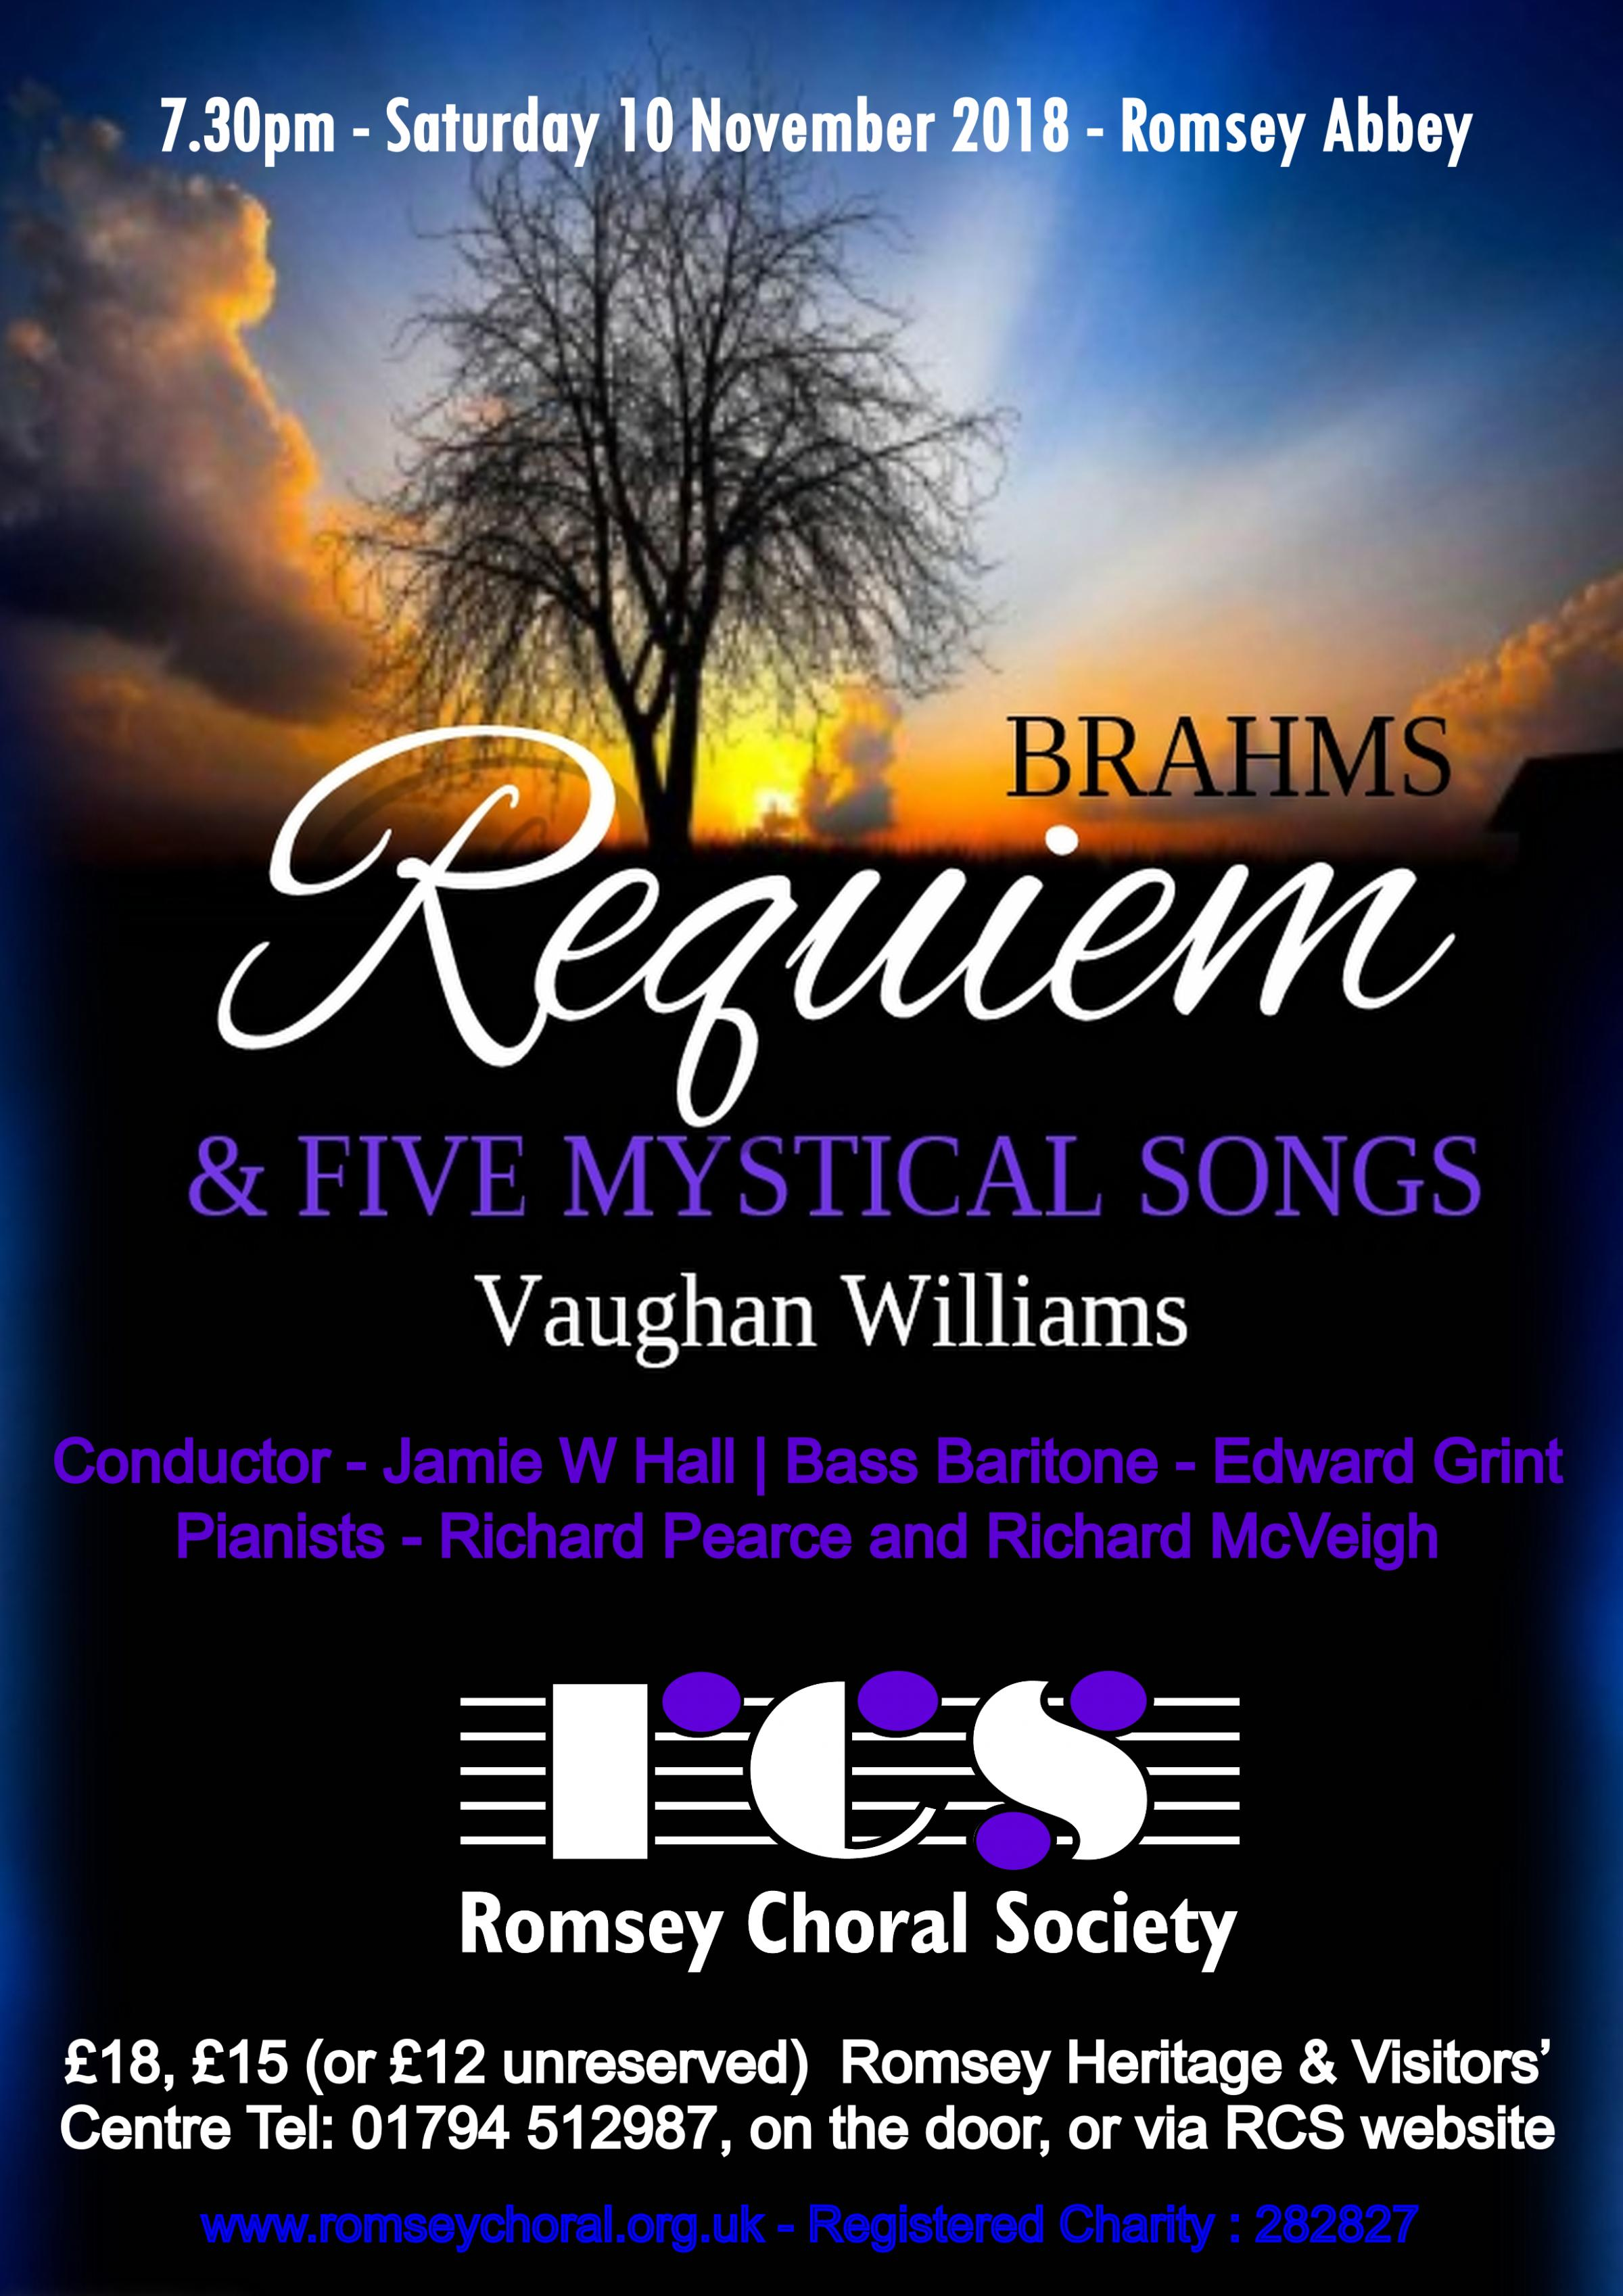 Romsey Choral Society presents - Brahms Requiem + Five Mystical Songs